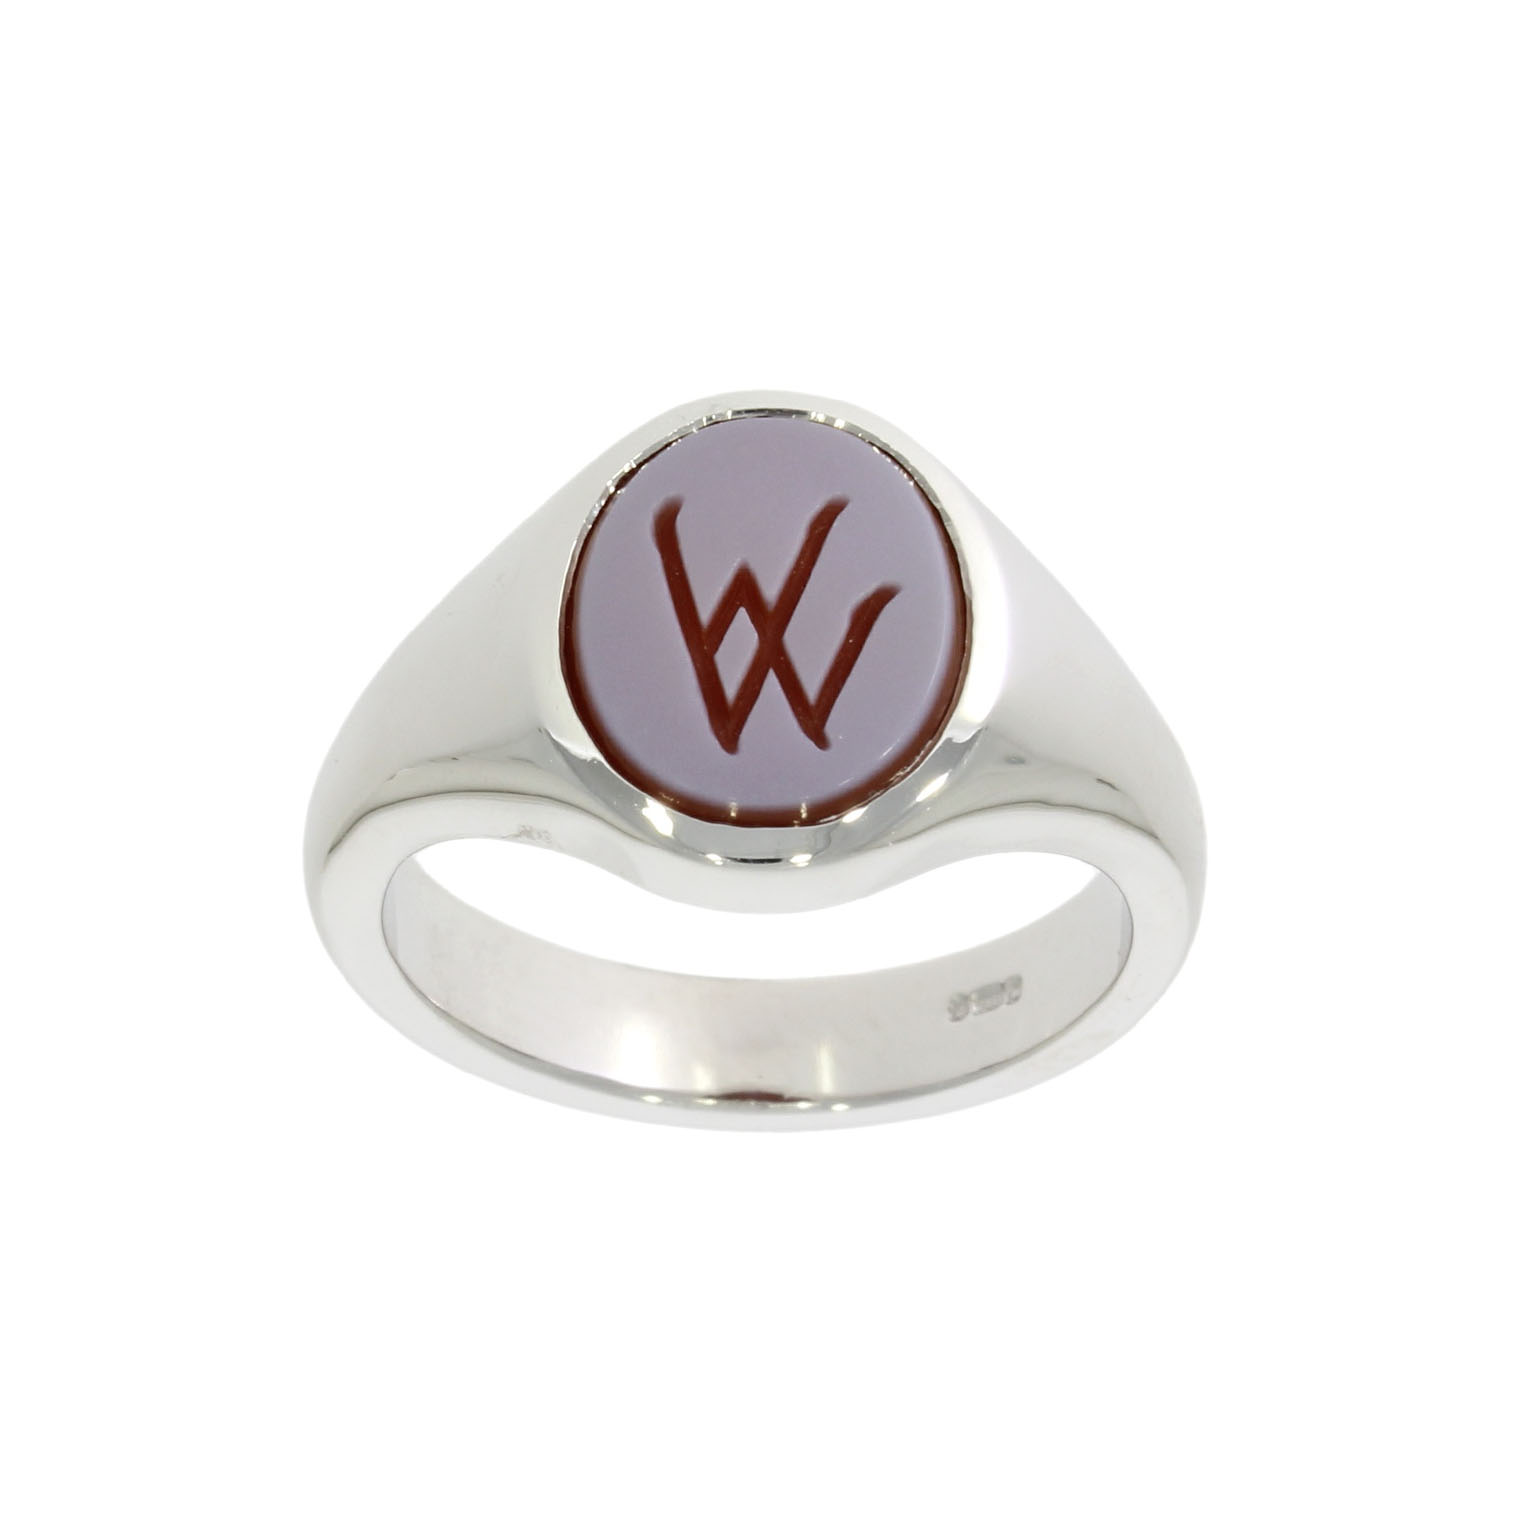 18ct White Gold Family Crest Signet Ring